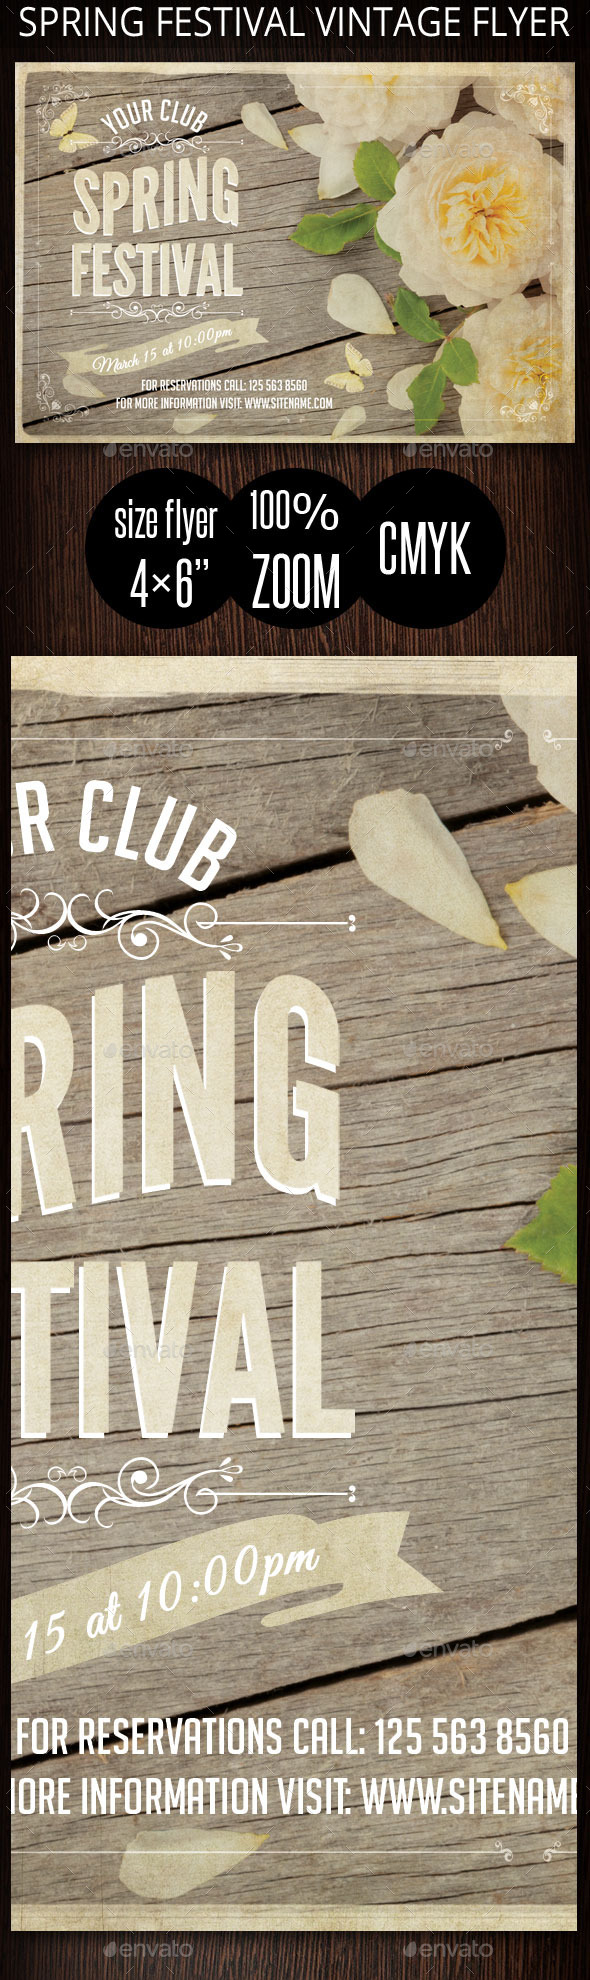 Spring Festival Vintage Flyer - Clubs & Parties Events